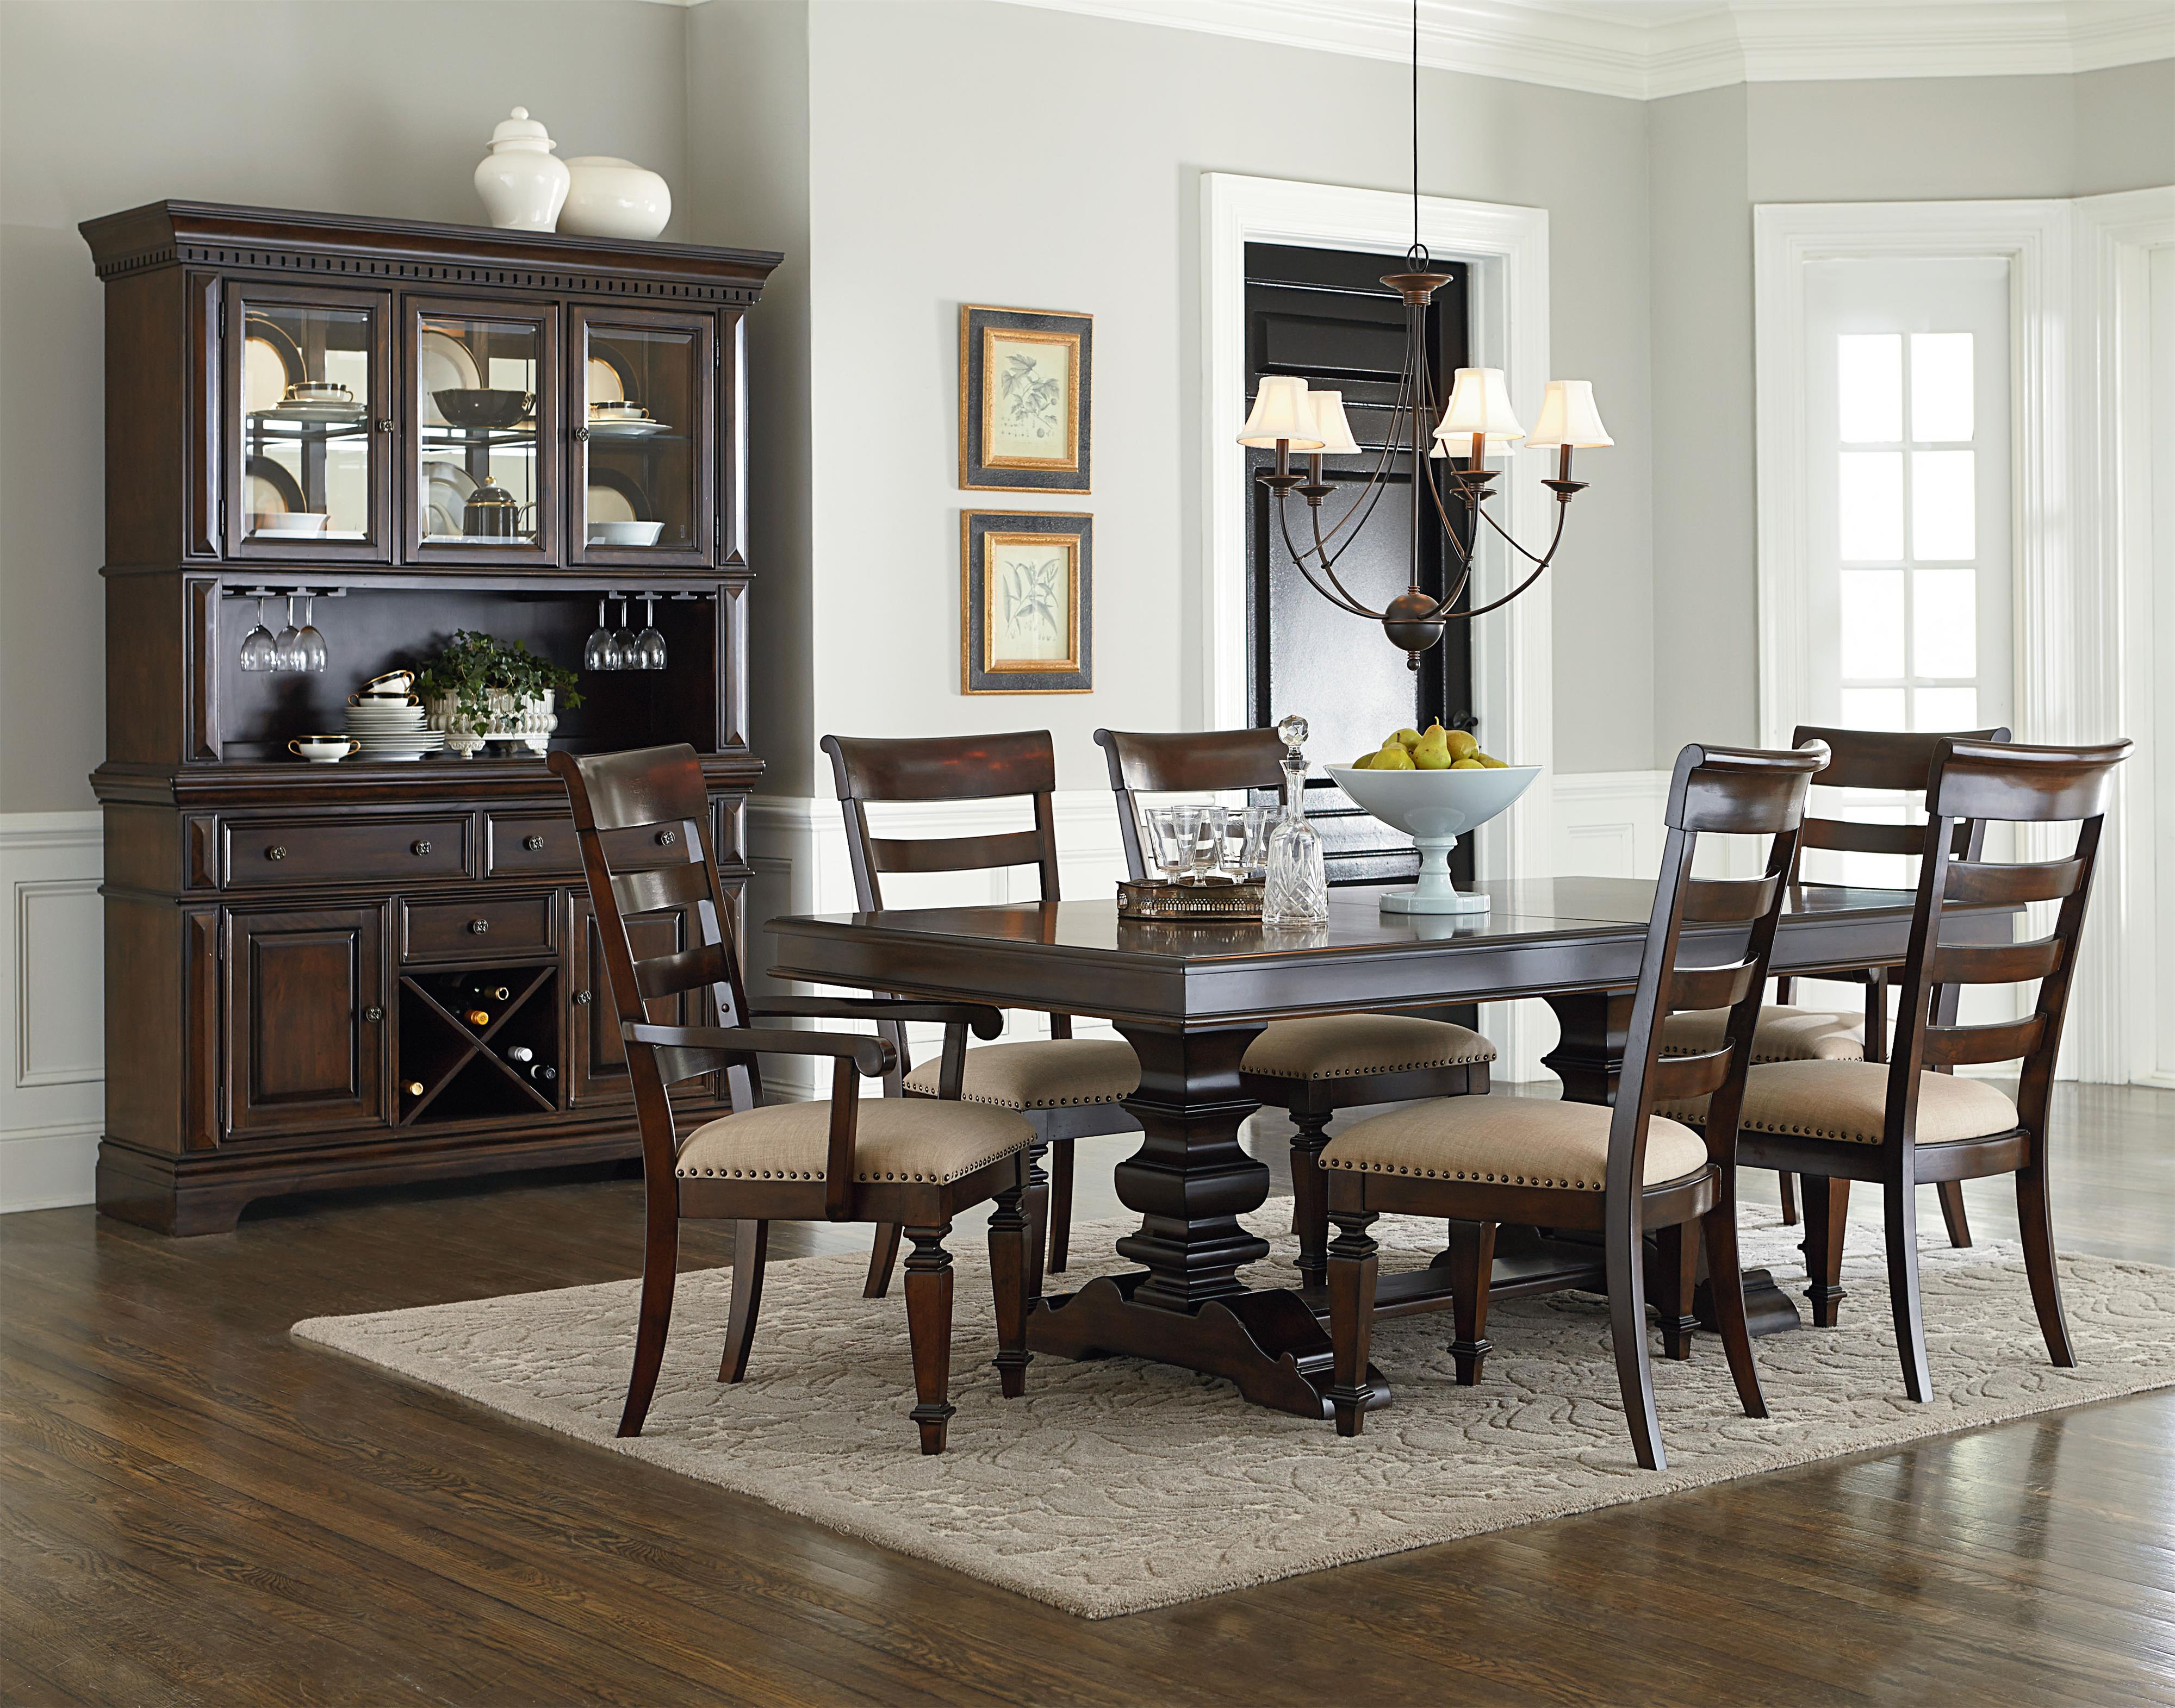 Formal dining room tables and chairs - Standard Furniture Charleston Trestle Dining Table With 18 Leaf Wayside Furniture Dining Room Table